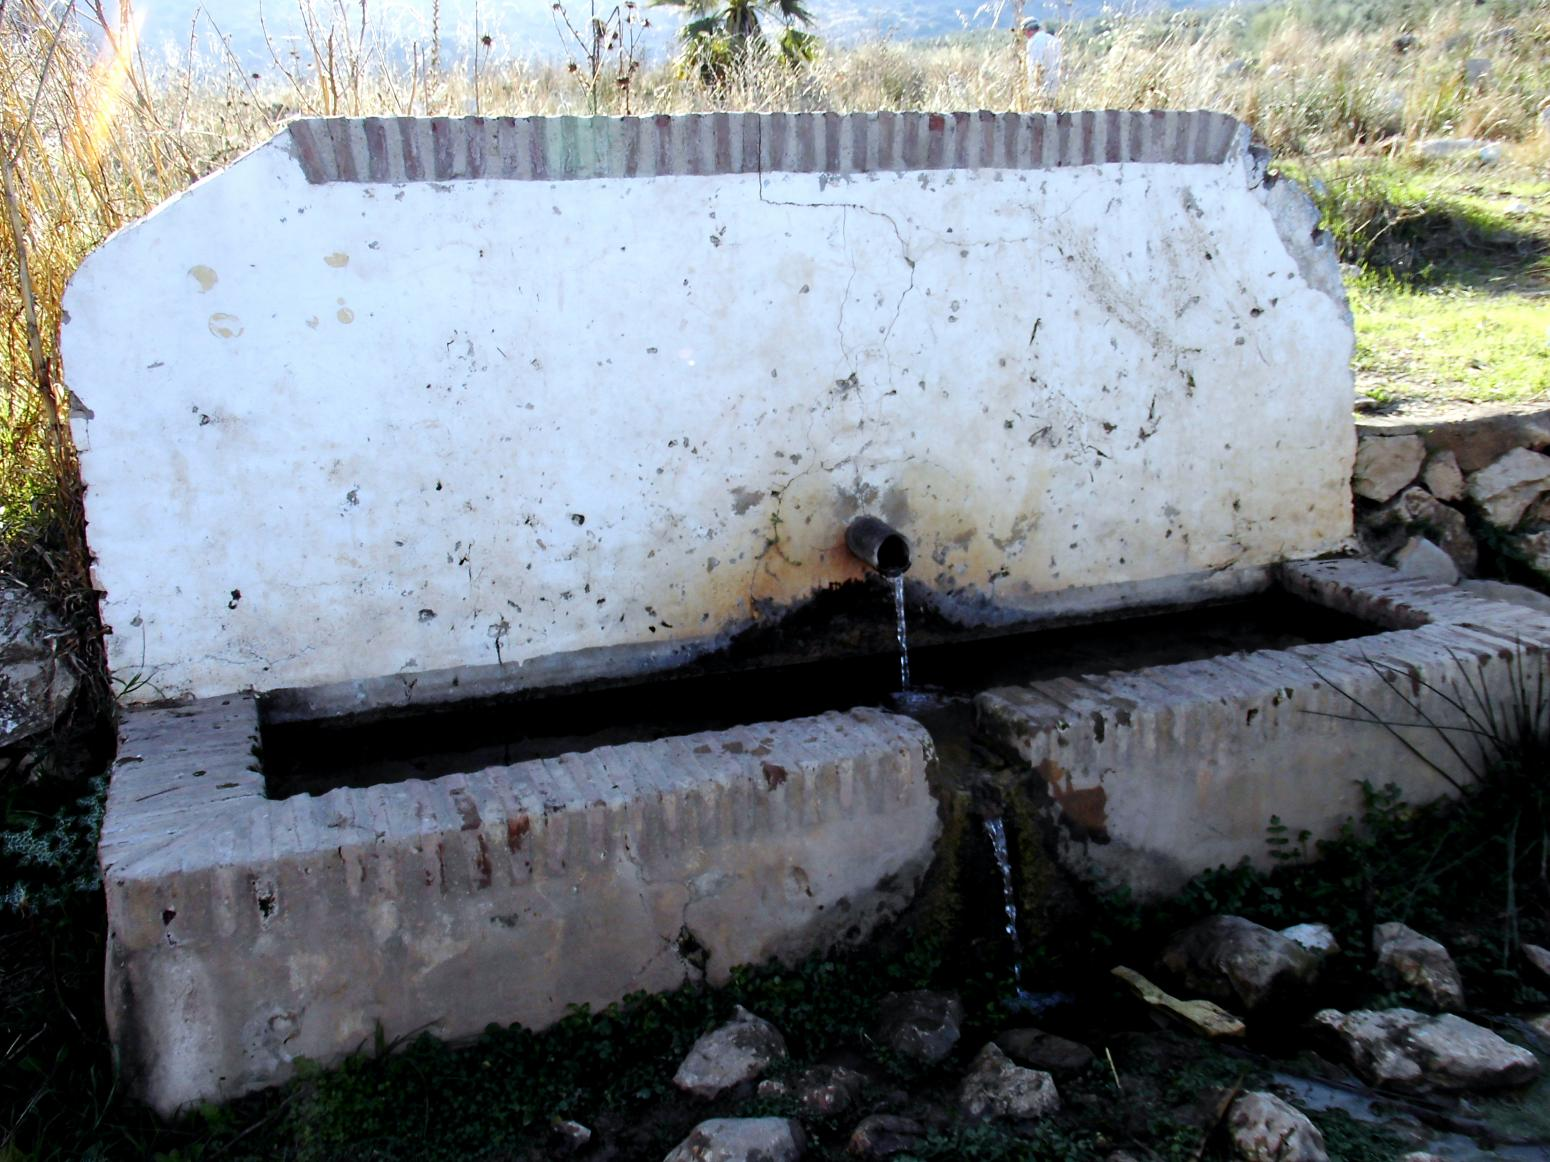 Imagen de GR 249. Stage 13. Archidona - Villanueva de Tapia. At the beginning of this Stage you'll pass close by the Fuente de Sacristan spring, which is very important for the walkers in Archidona